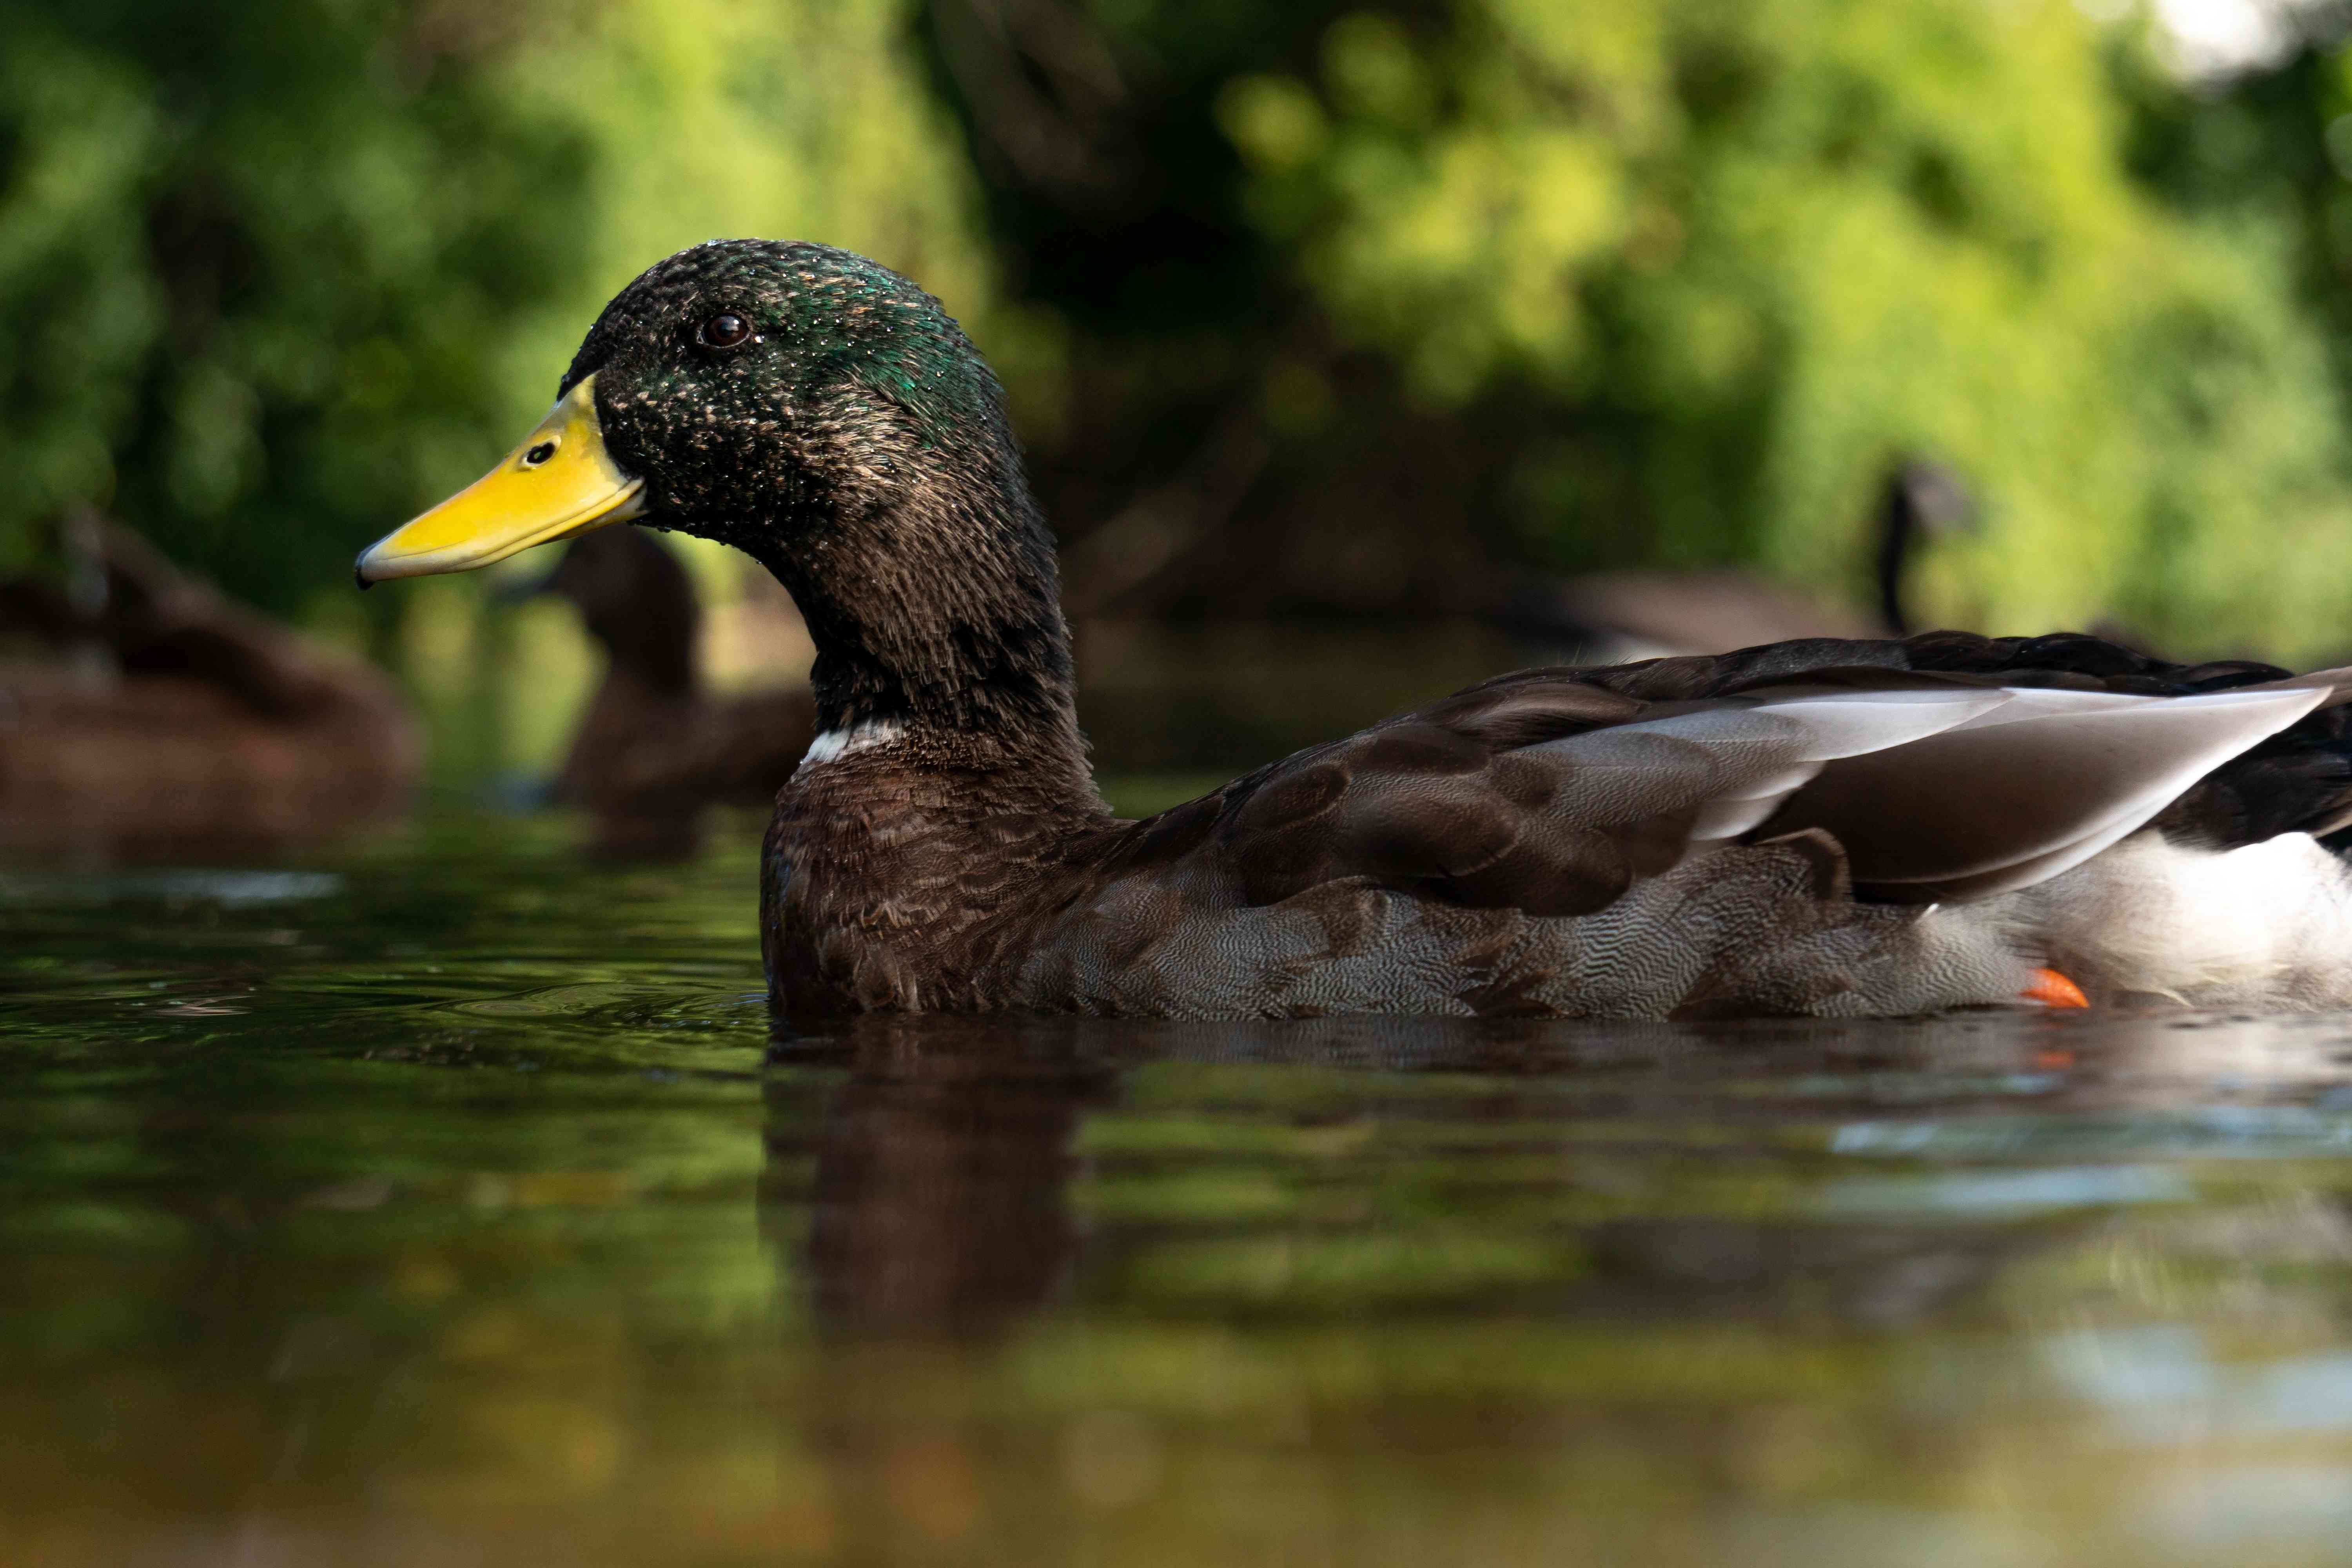 duck swims in green pond